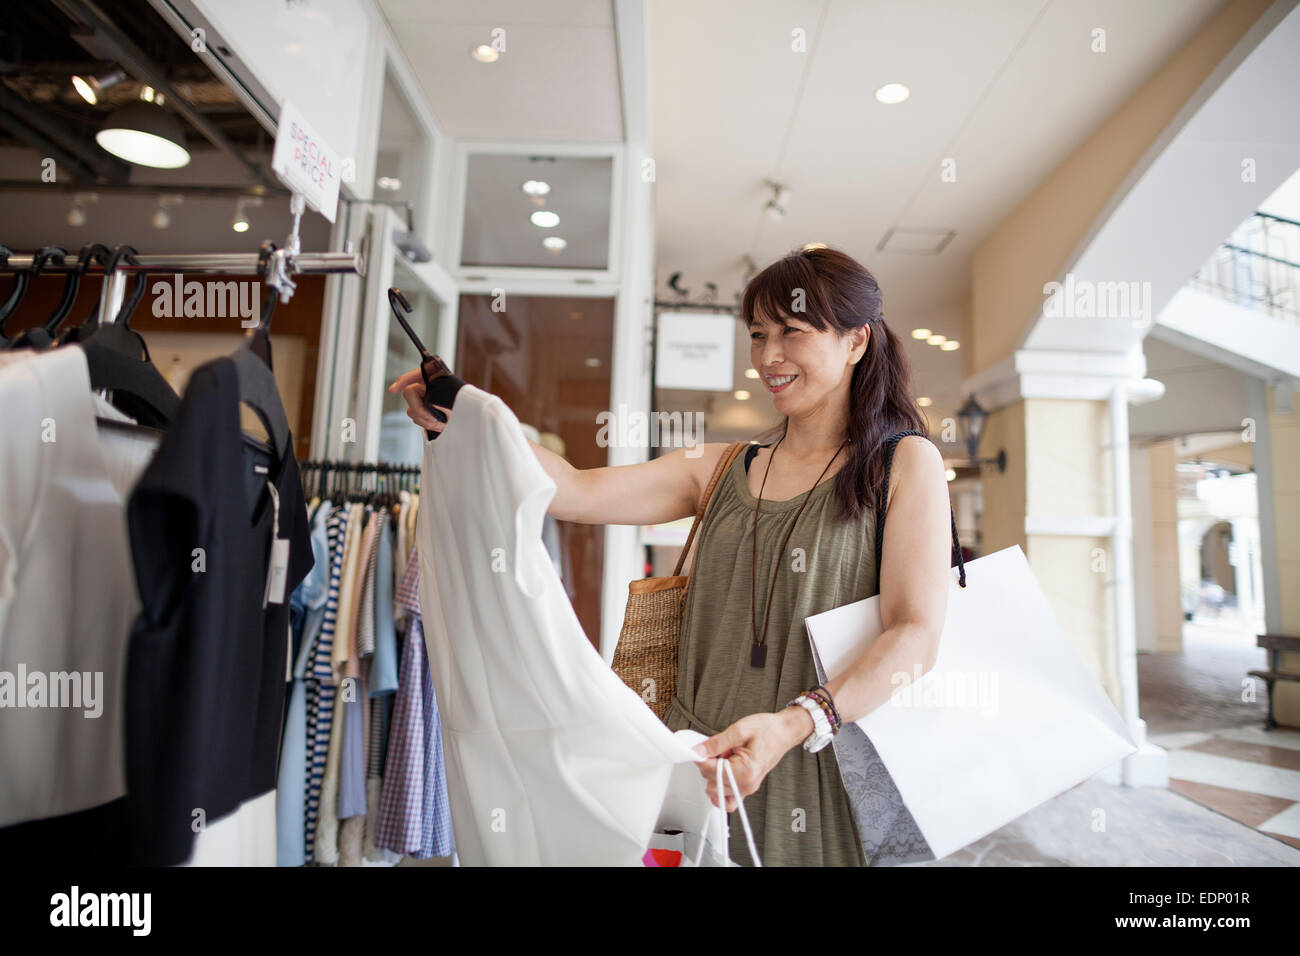 Woman looking at clothing in a shopping mall. - Stock Image